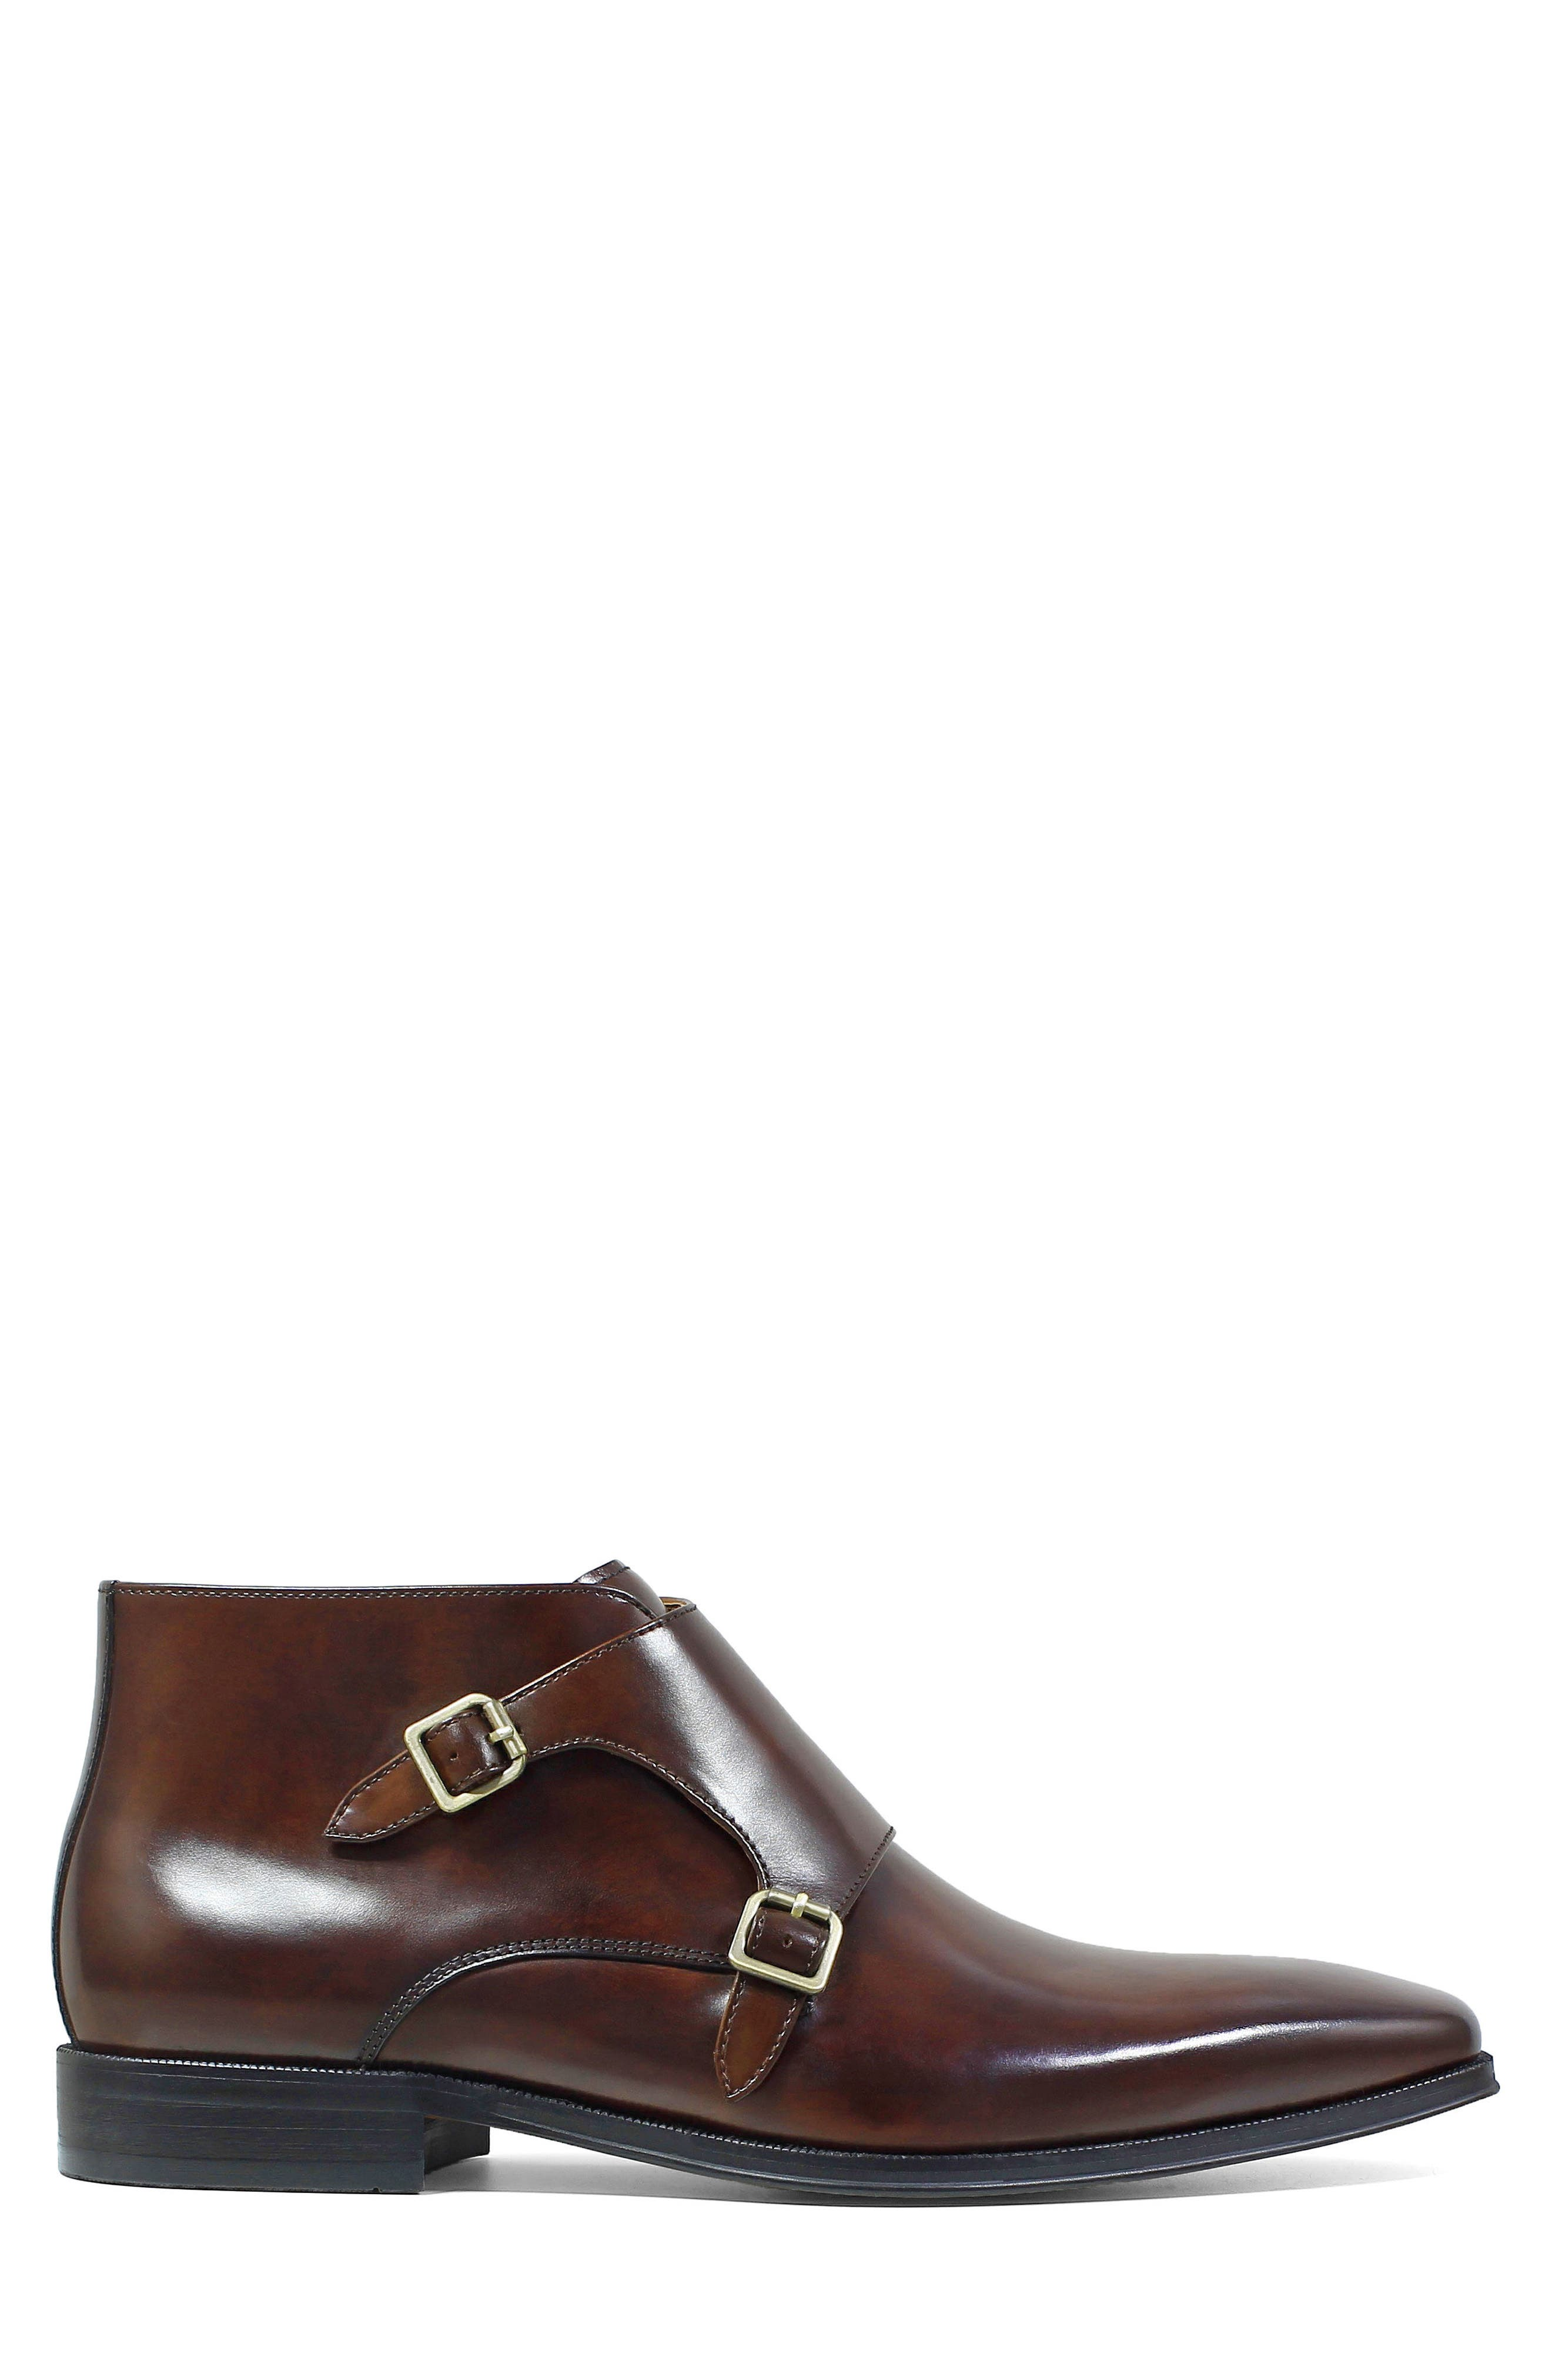 Belfast Double Monk Strap Boot,                             Alternate thumbnail 6, color,